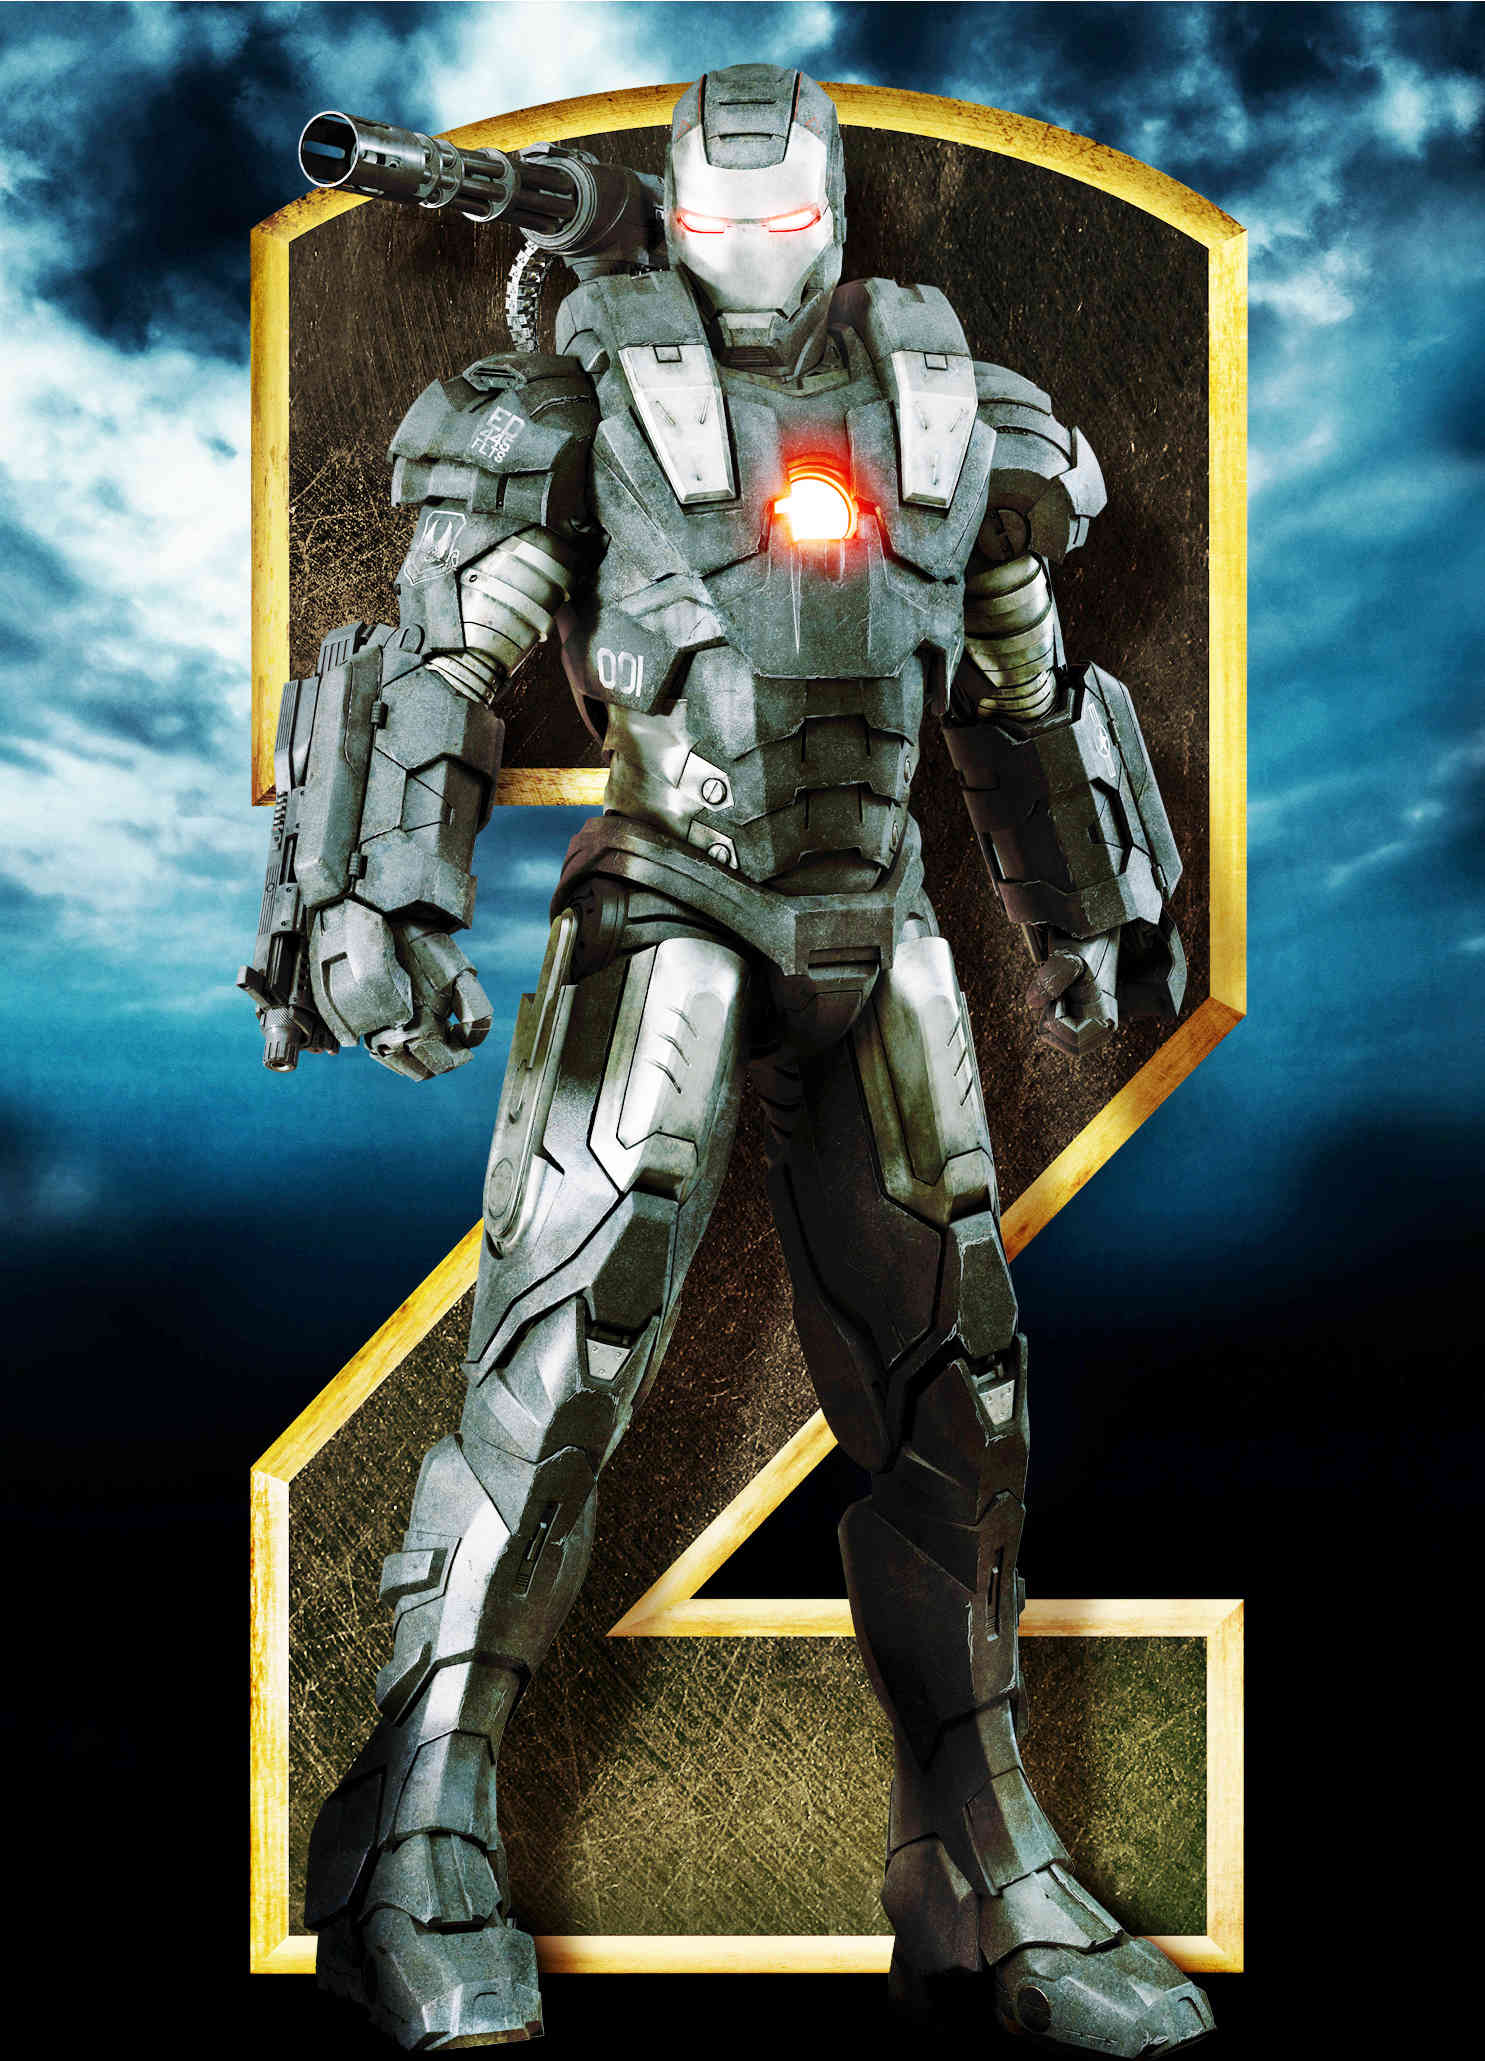 Iron Man 2 Gets New Standee Character Posters and Production Image